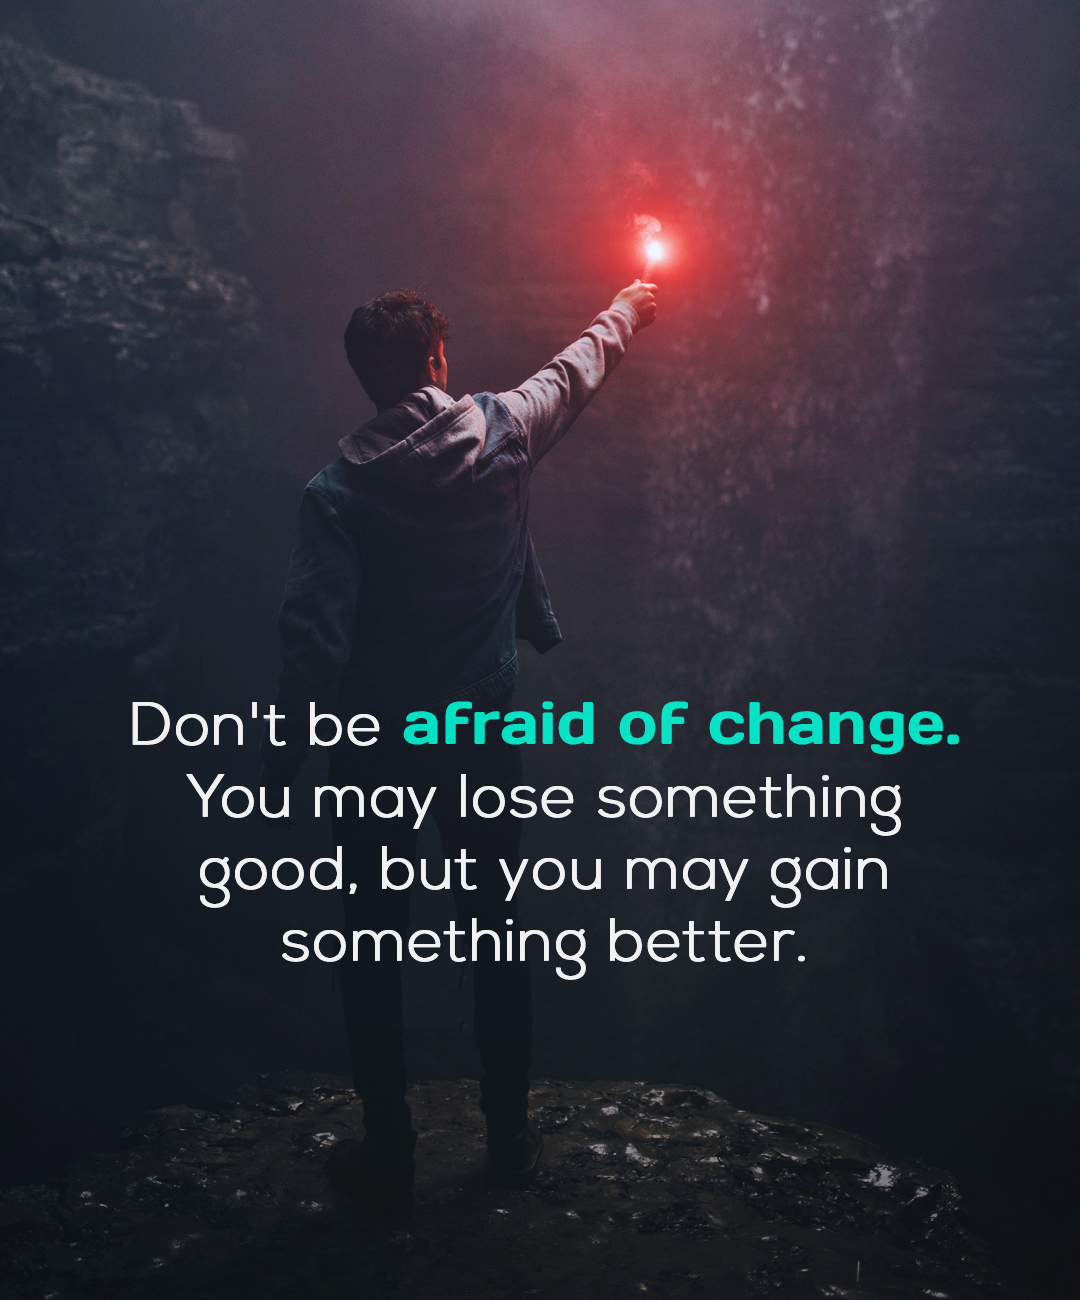 """Don't be afraid of change. You may lose something good, but you may gain something better."" -Anonymous [1800×1300]"